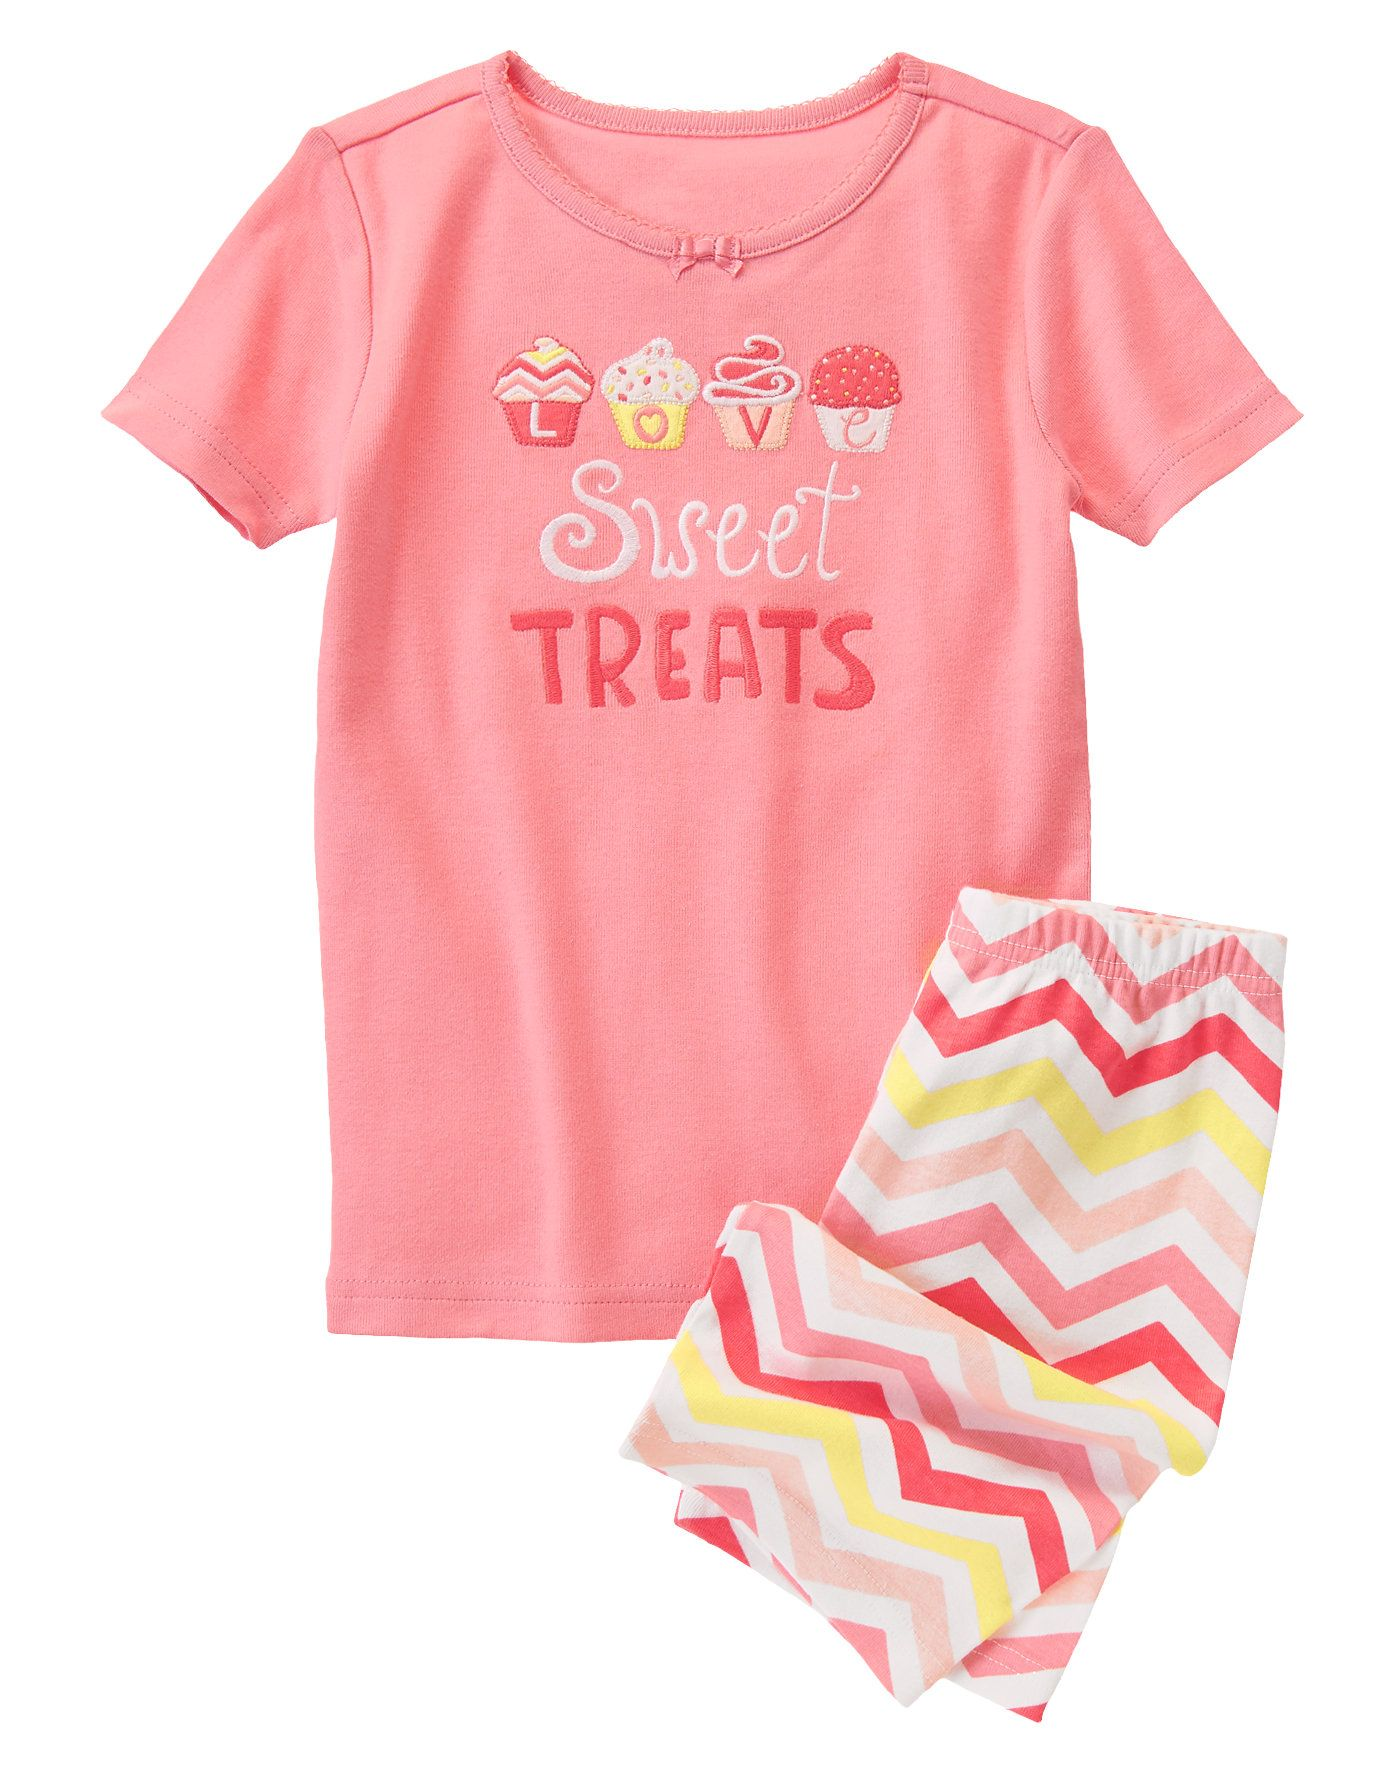 NEW Gymboree Sweet Treats Love Gymmies Shorts PJs Size 3 year Summer Top Shorts